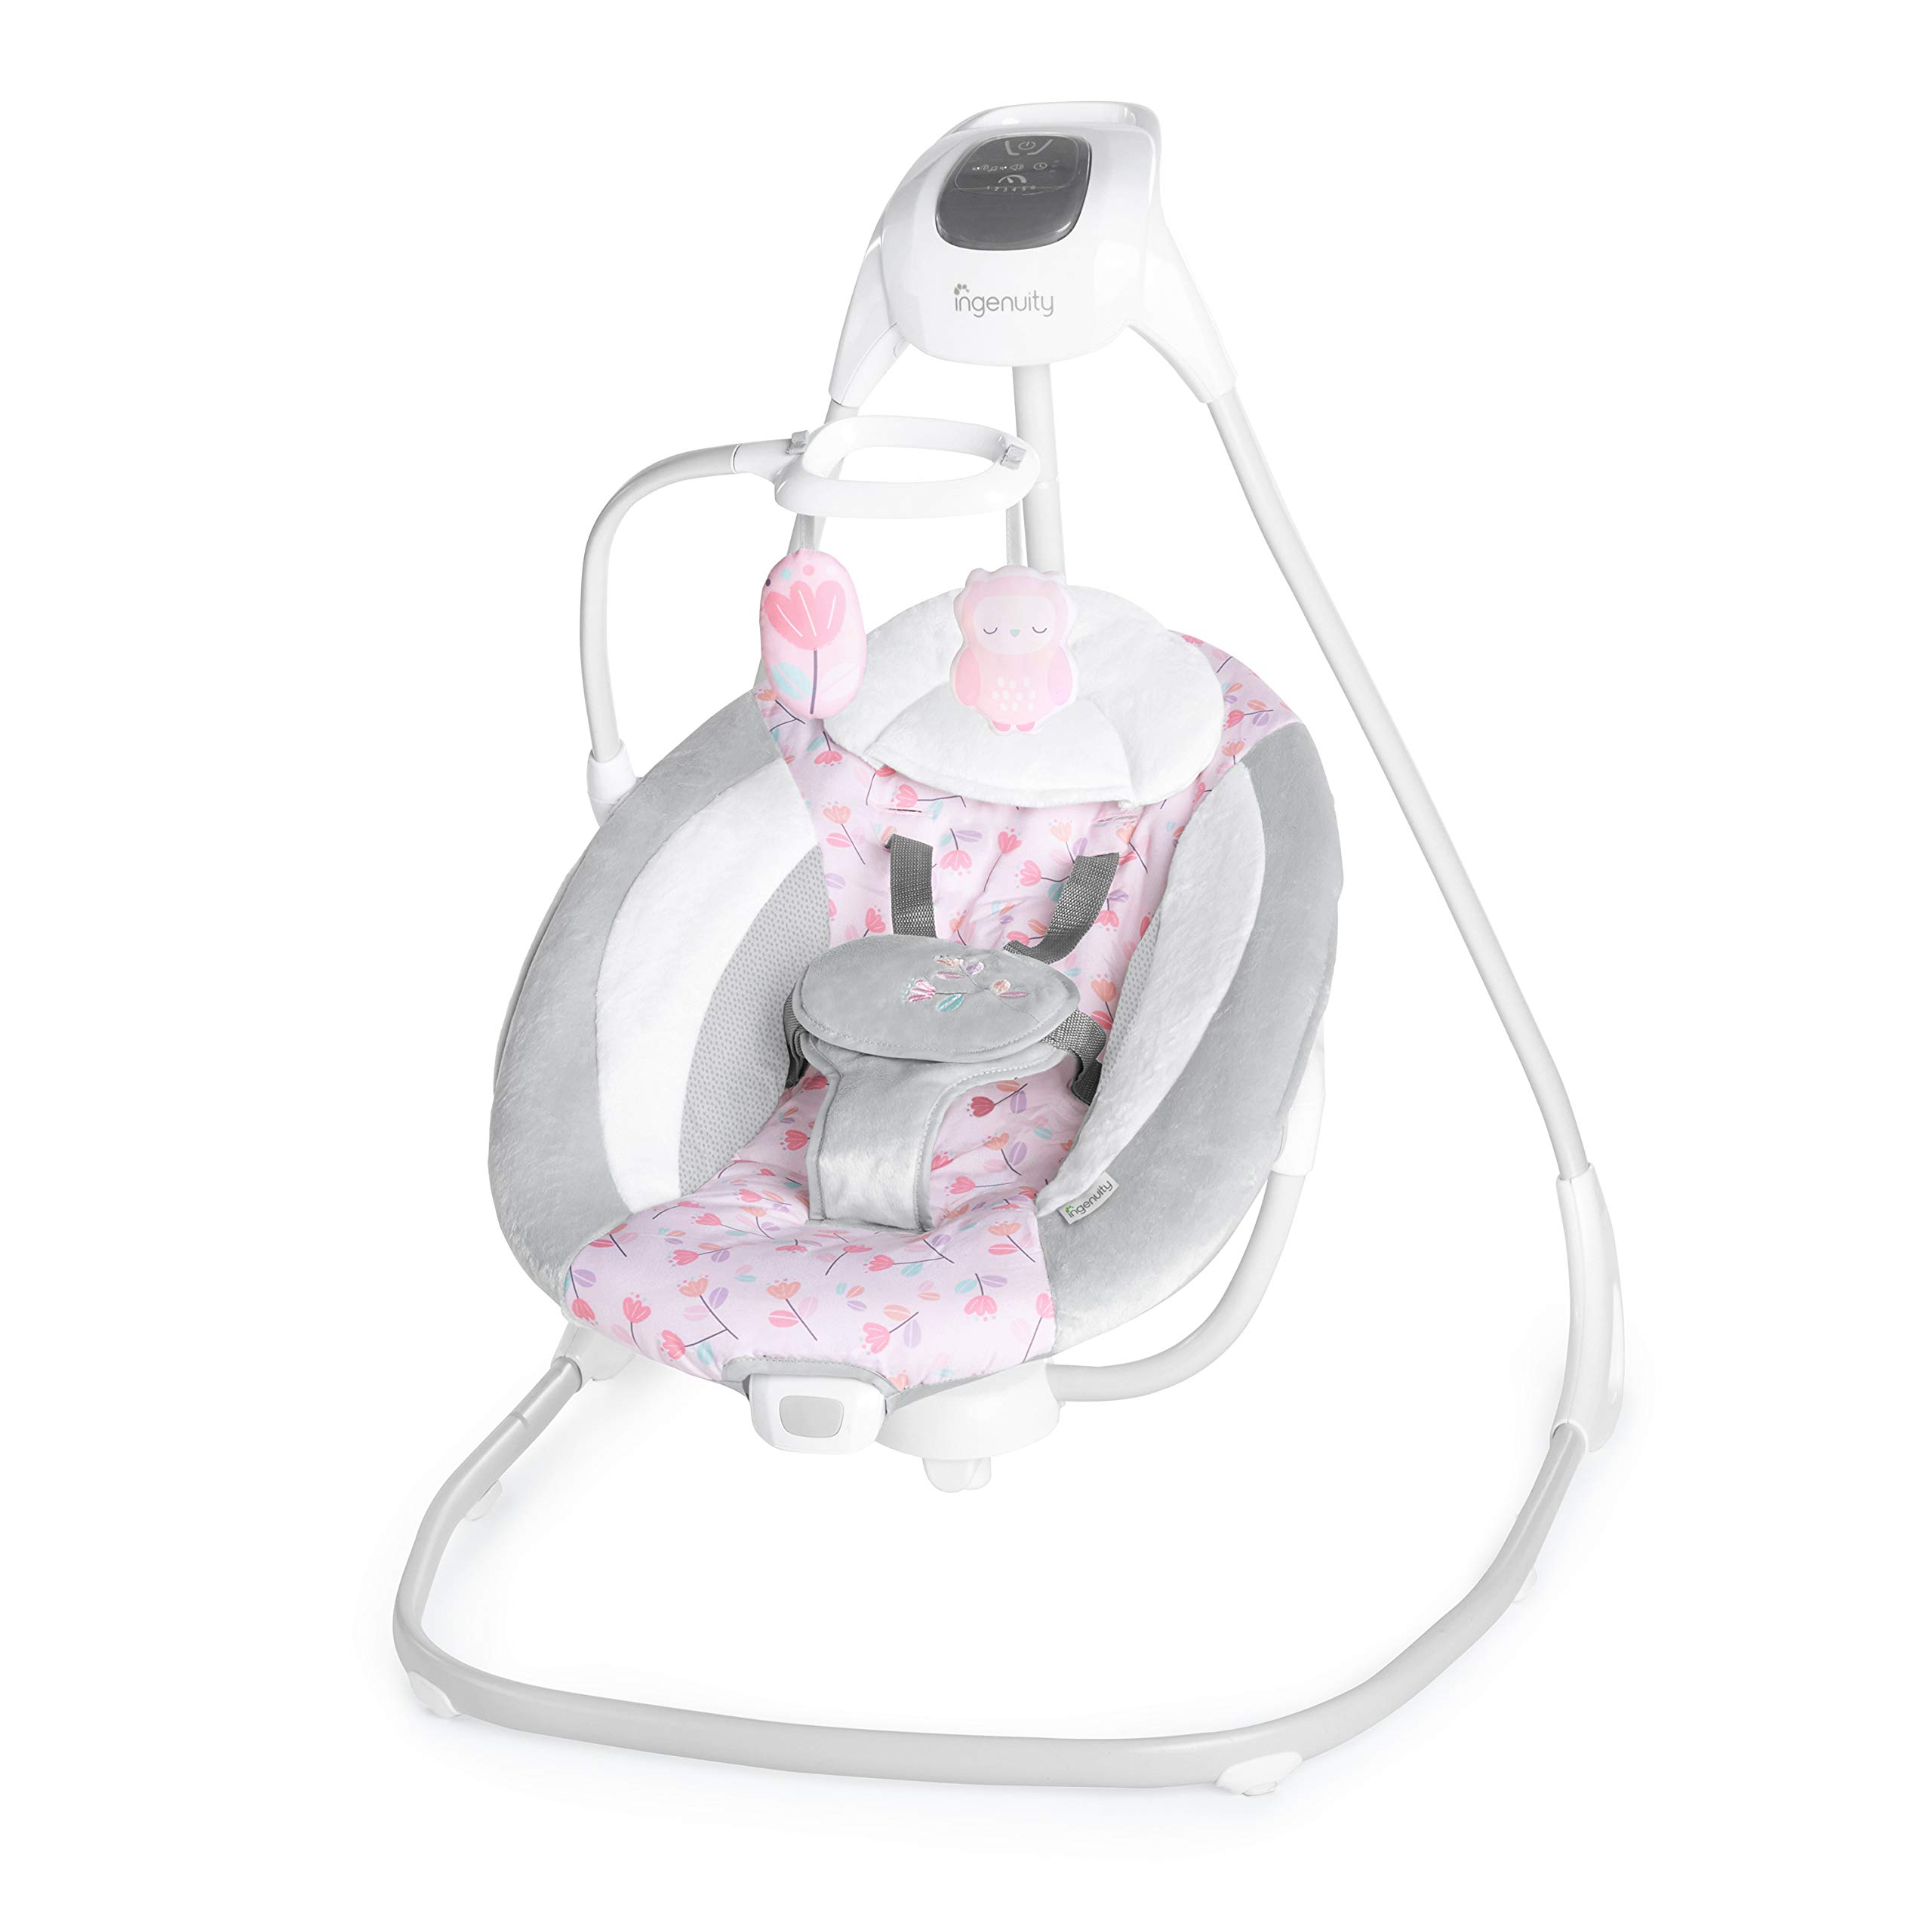 Ingenuity SimpleComfort Cradling Swing - Cassidy - Plug-in Swing with Soothing Vibrations